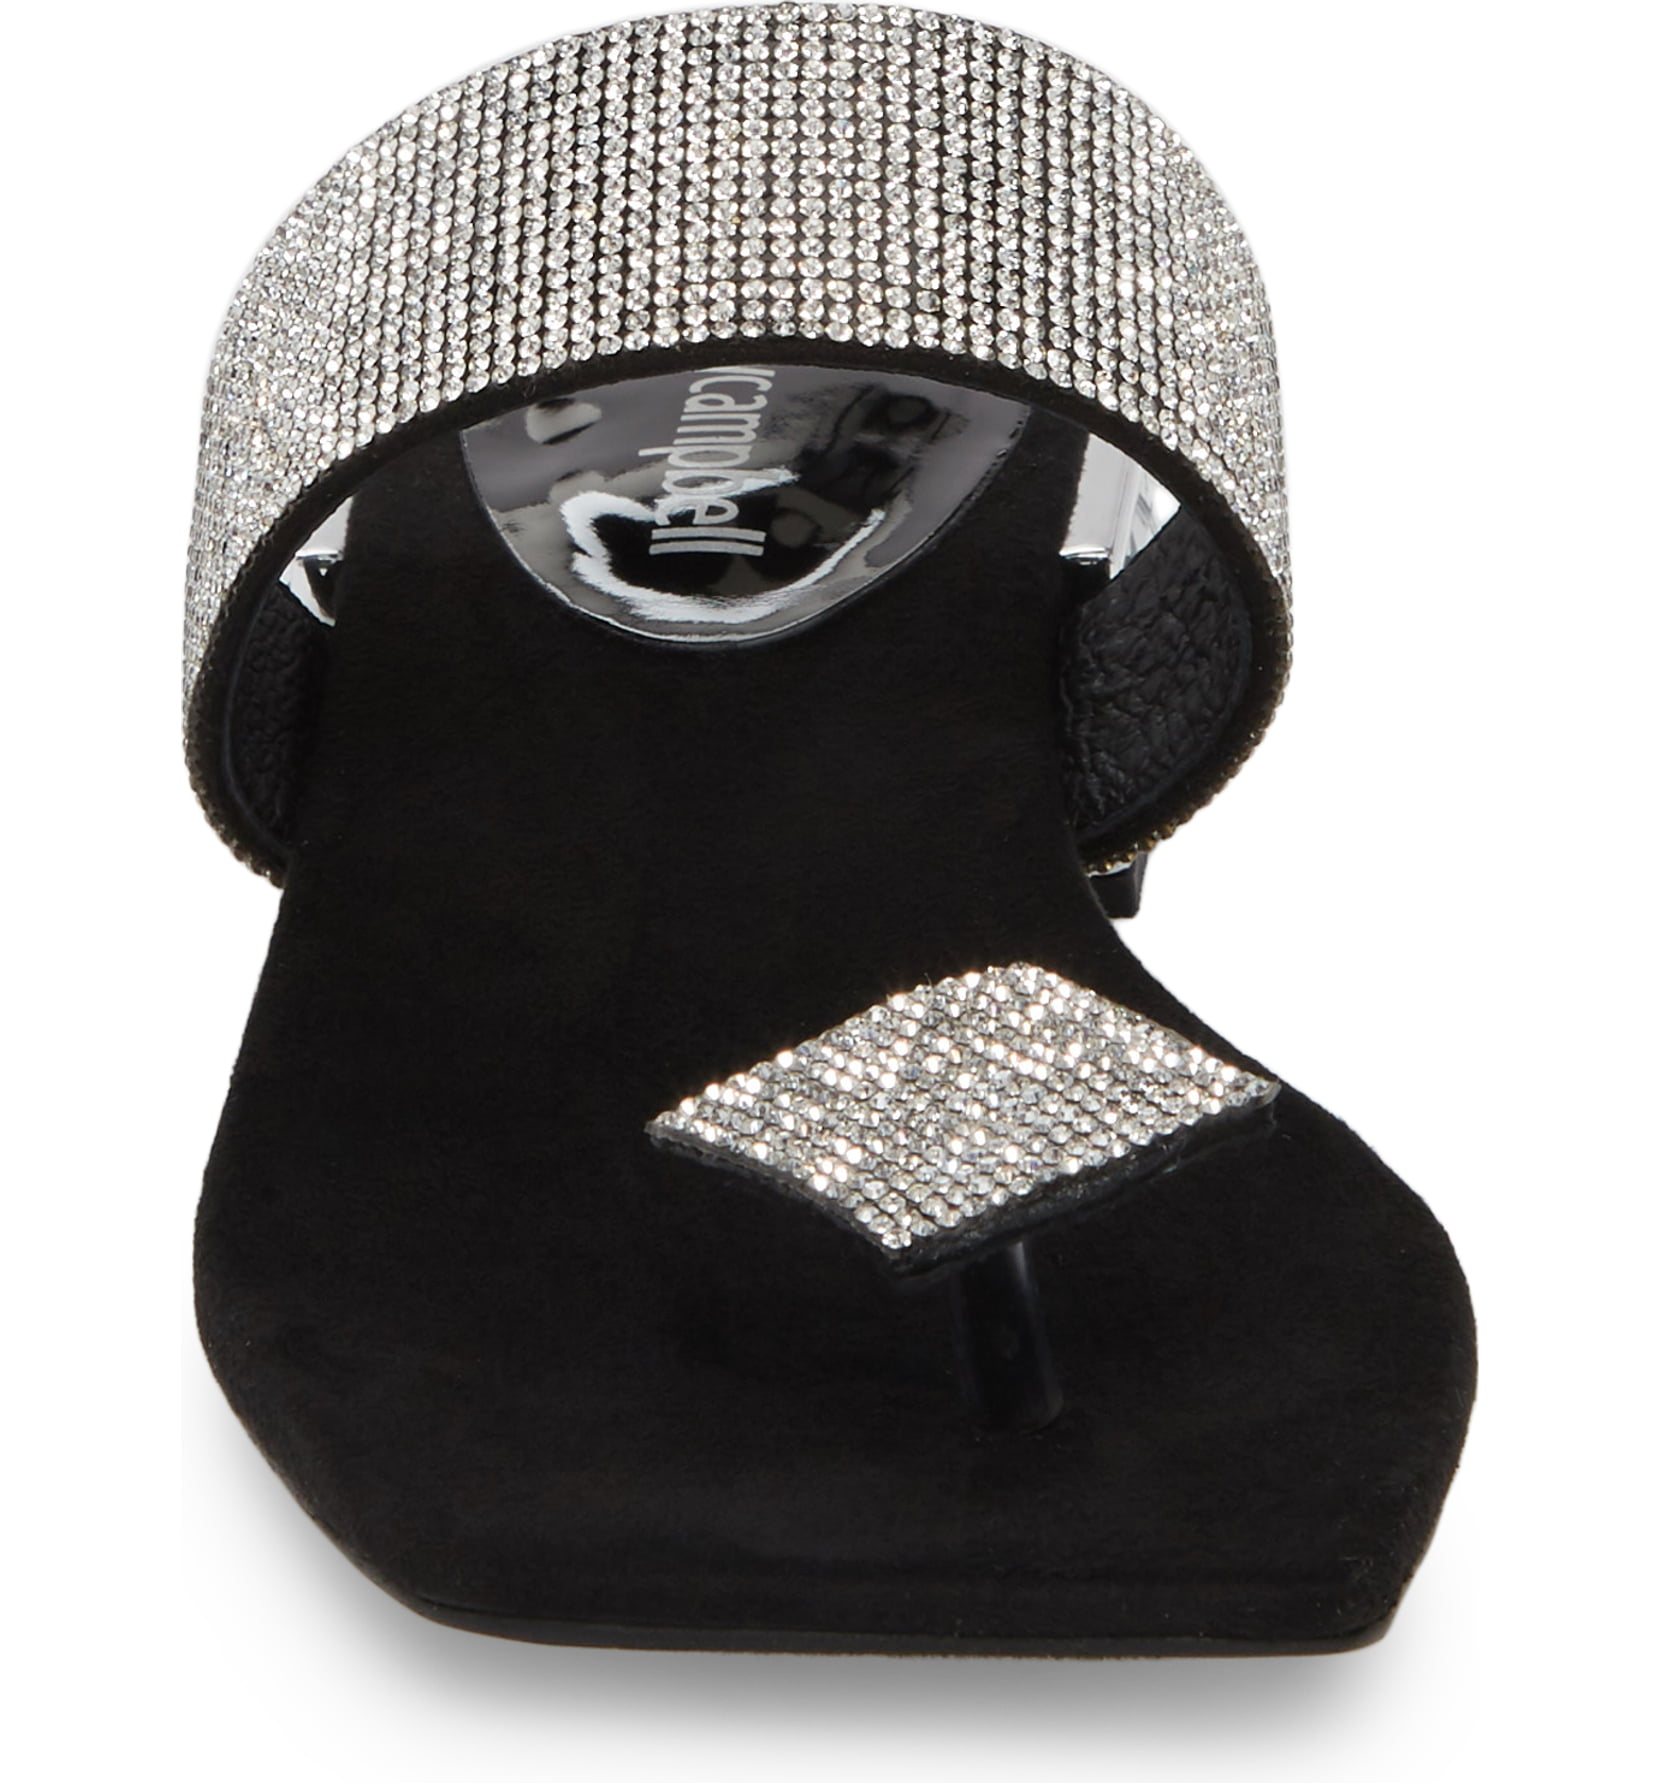 Jeffery-Campbell-ALISE-SH-Black-Silver-Embellished-Sandal-Jeweled-Square-Heel thumbnail 15